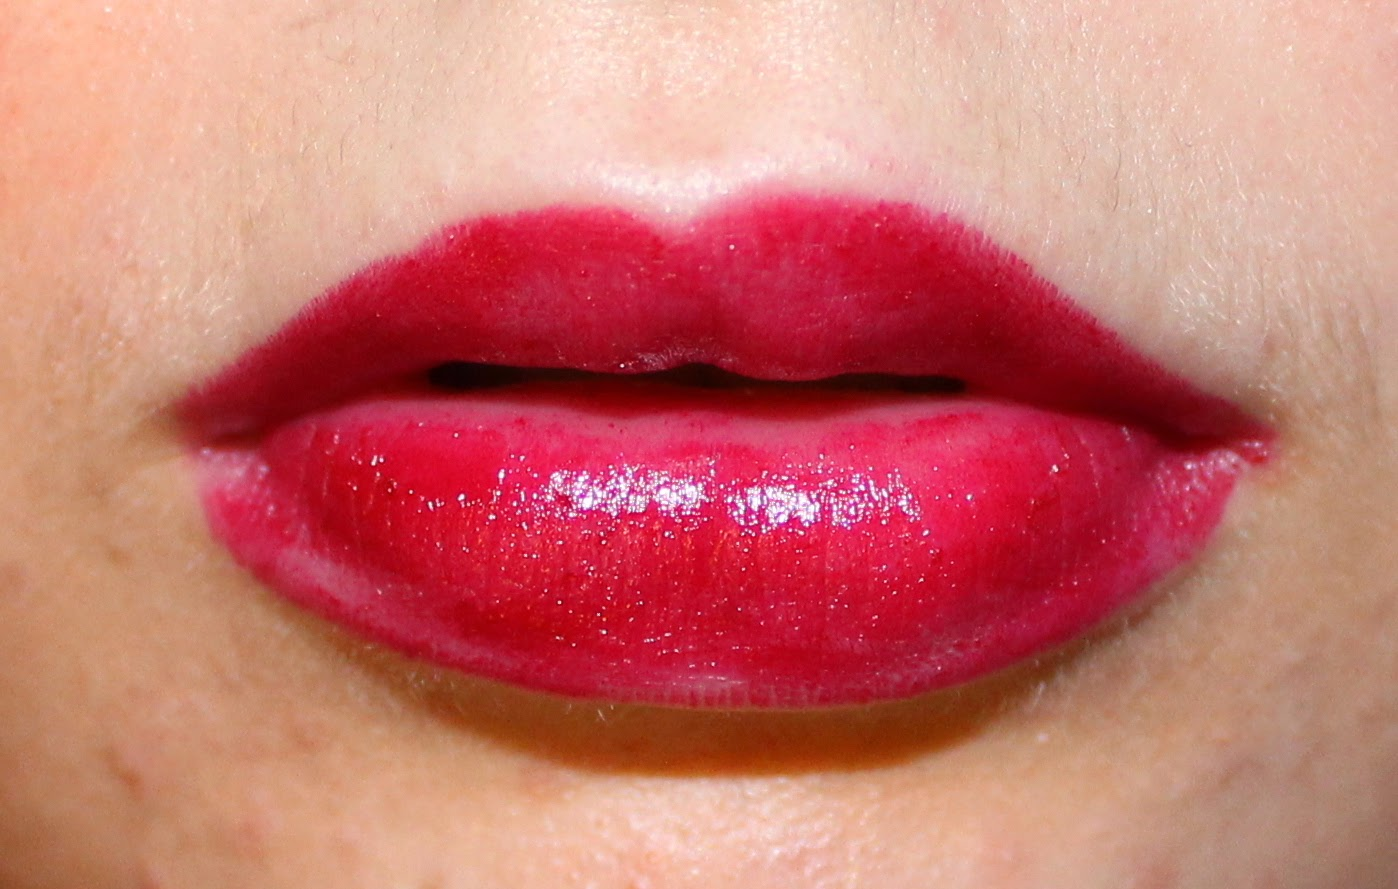 Annabelle TwistUp Retractable Lipstick Crayon in Cherry on Lips